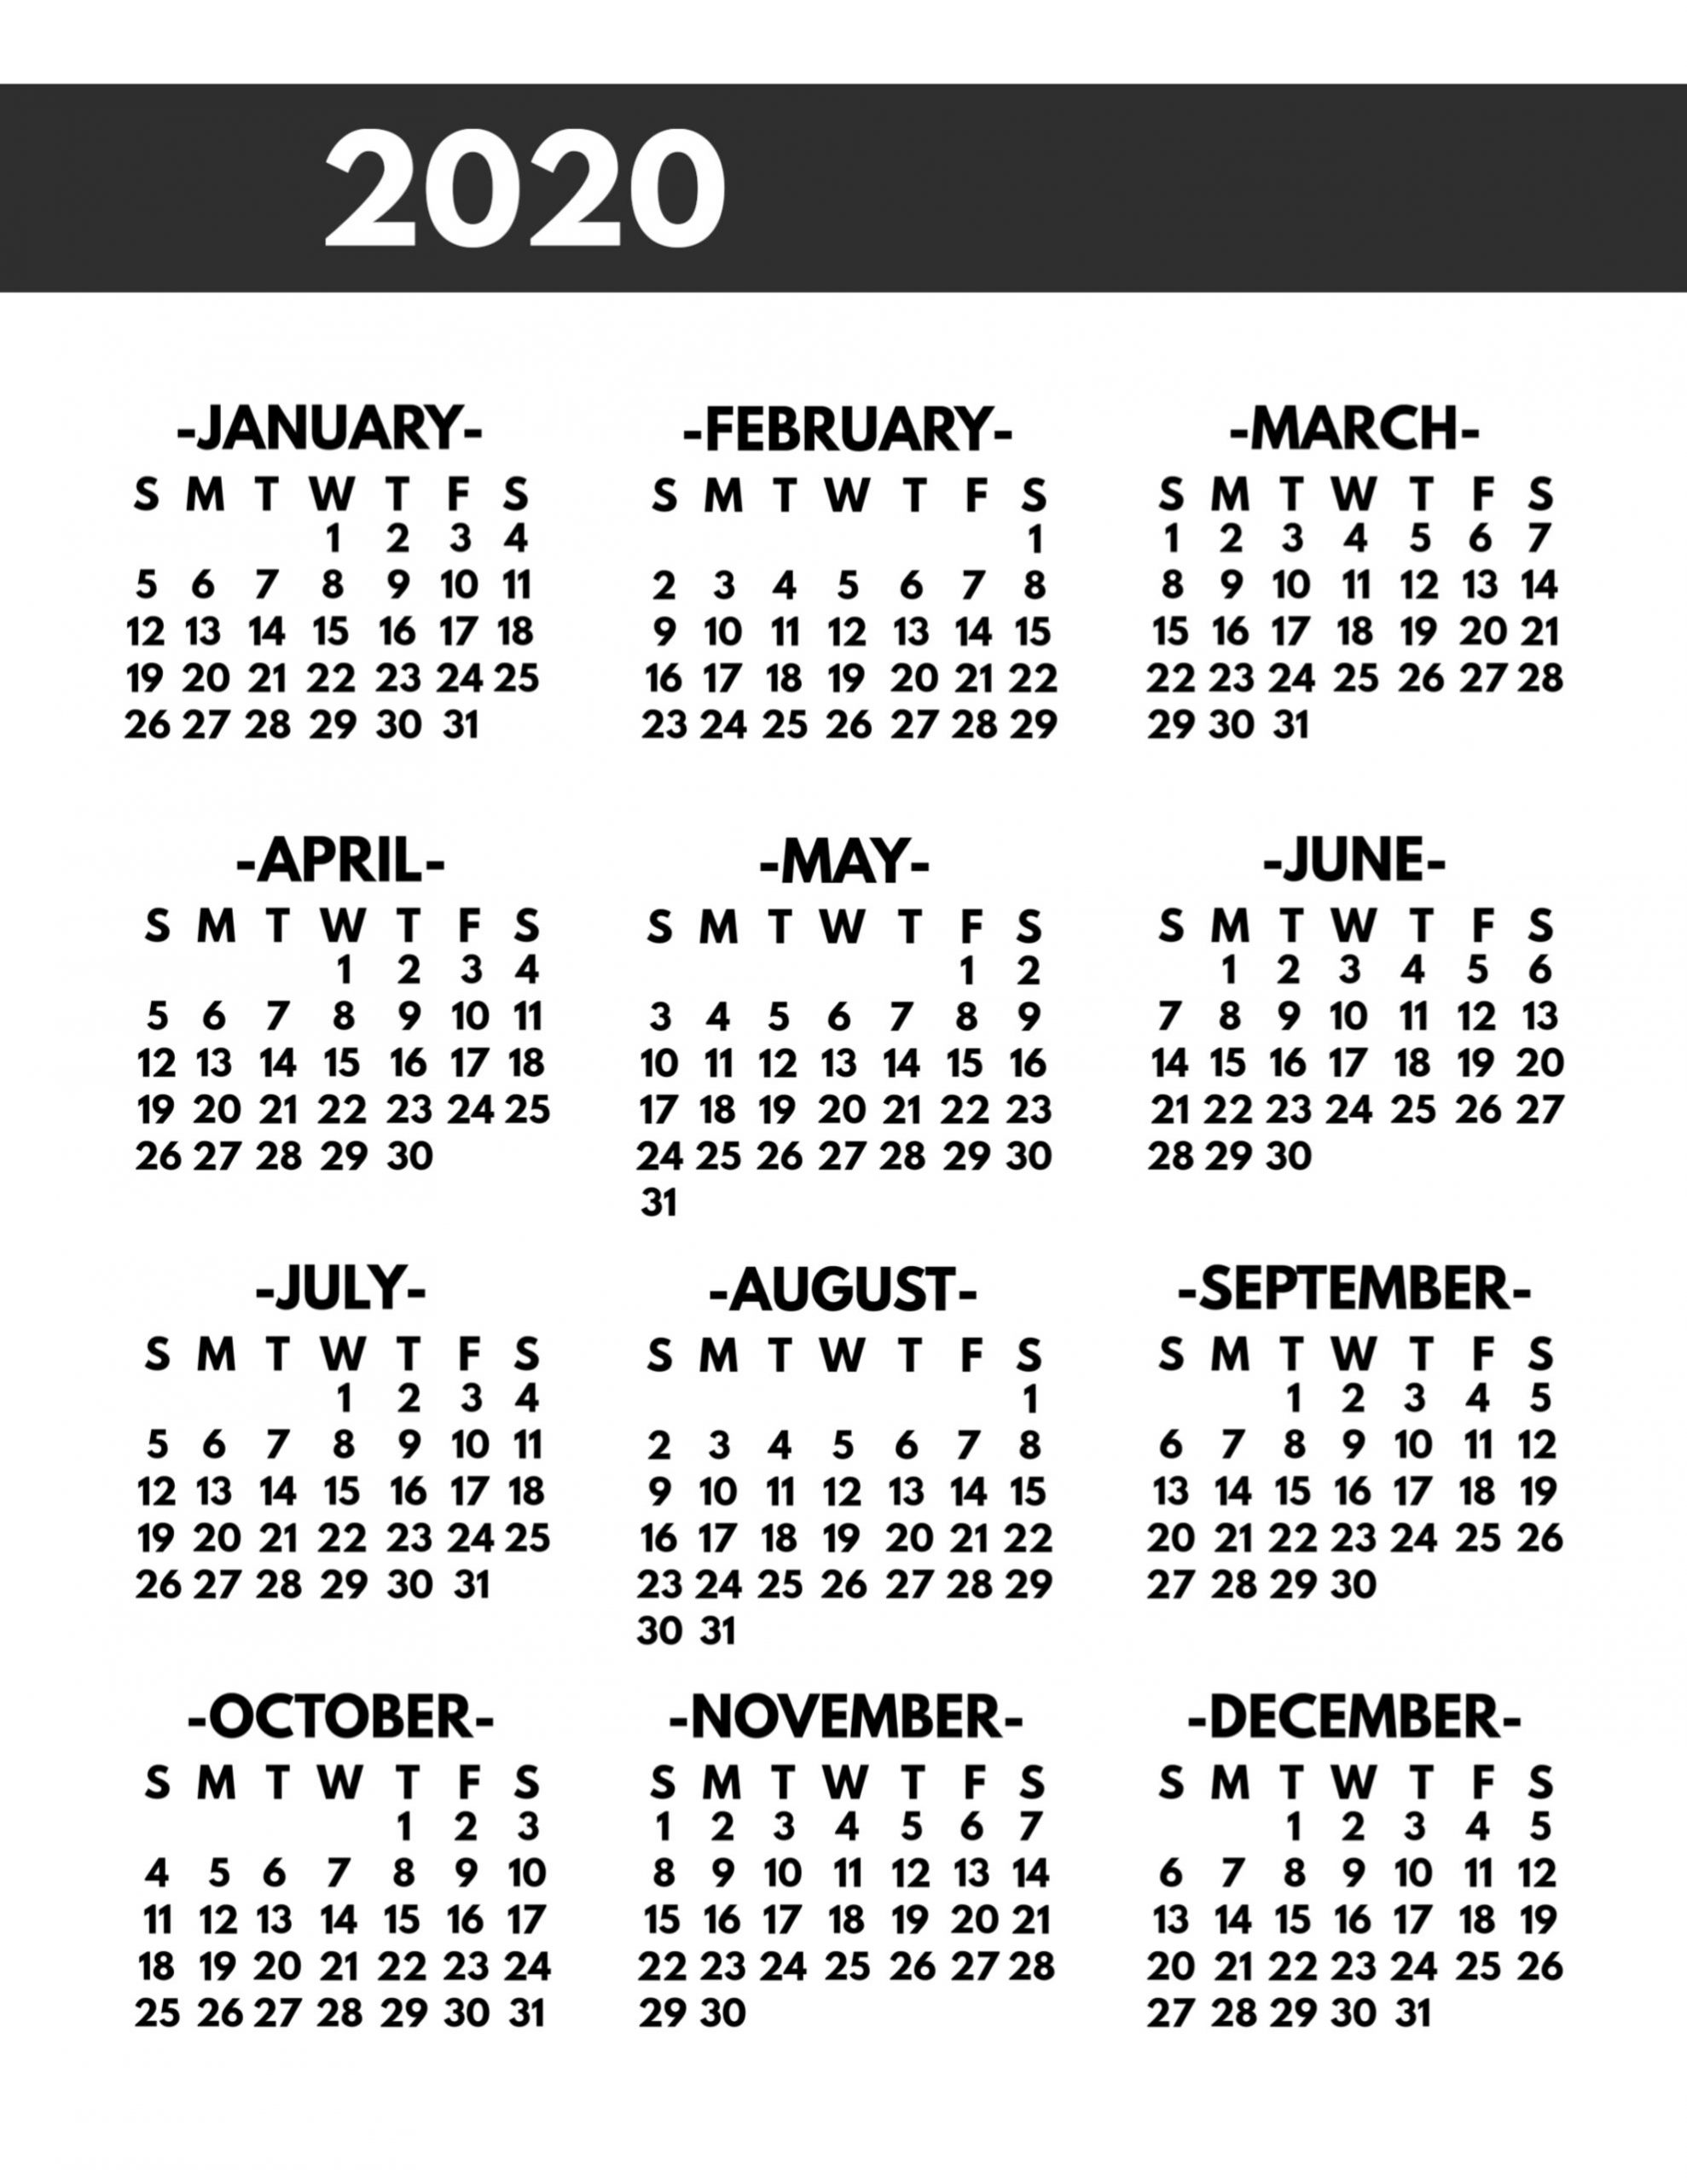 2020 Printable One Page Year At A Glance Calendar | Paper pertaining to 2020 At A Glance Calendar